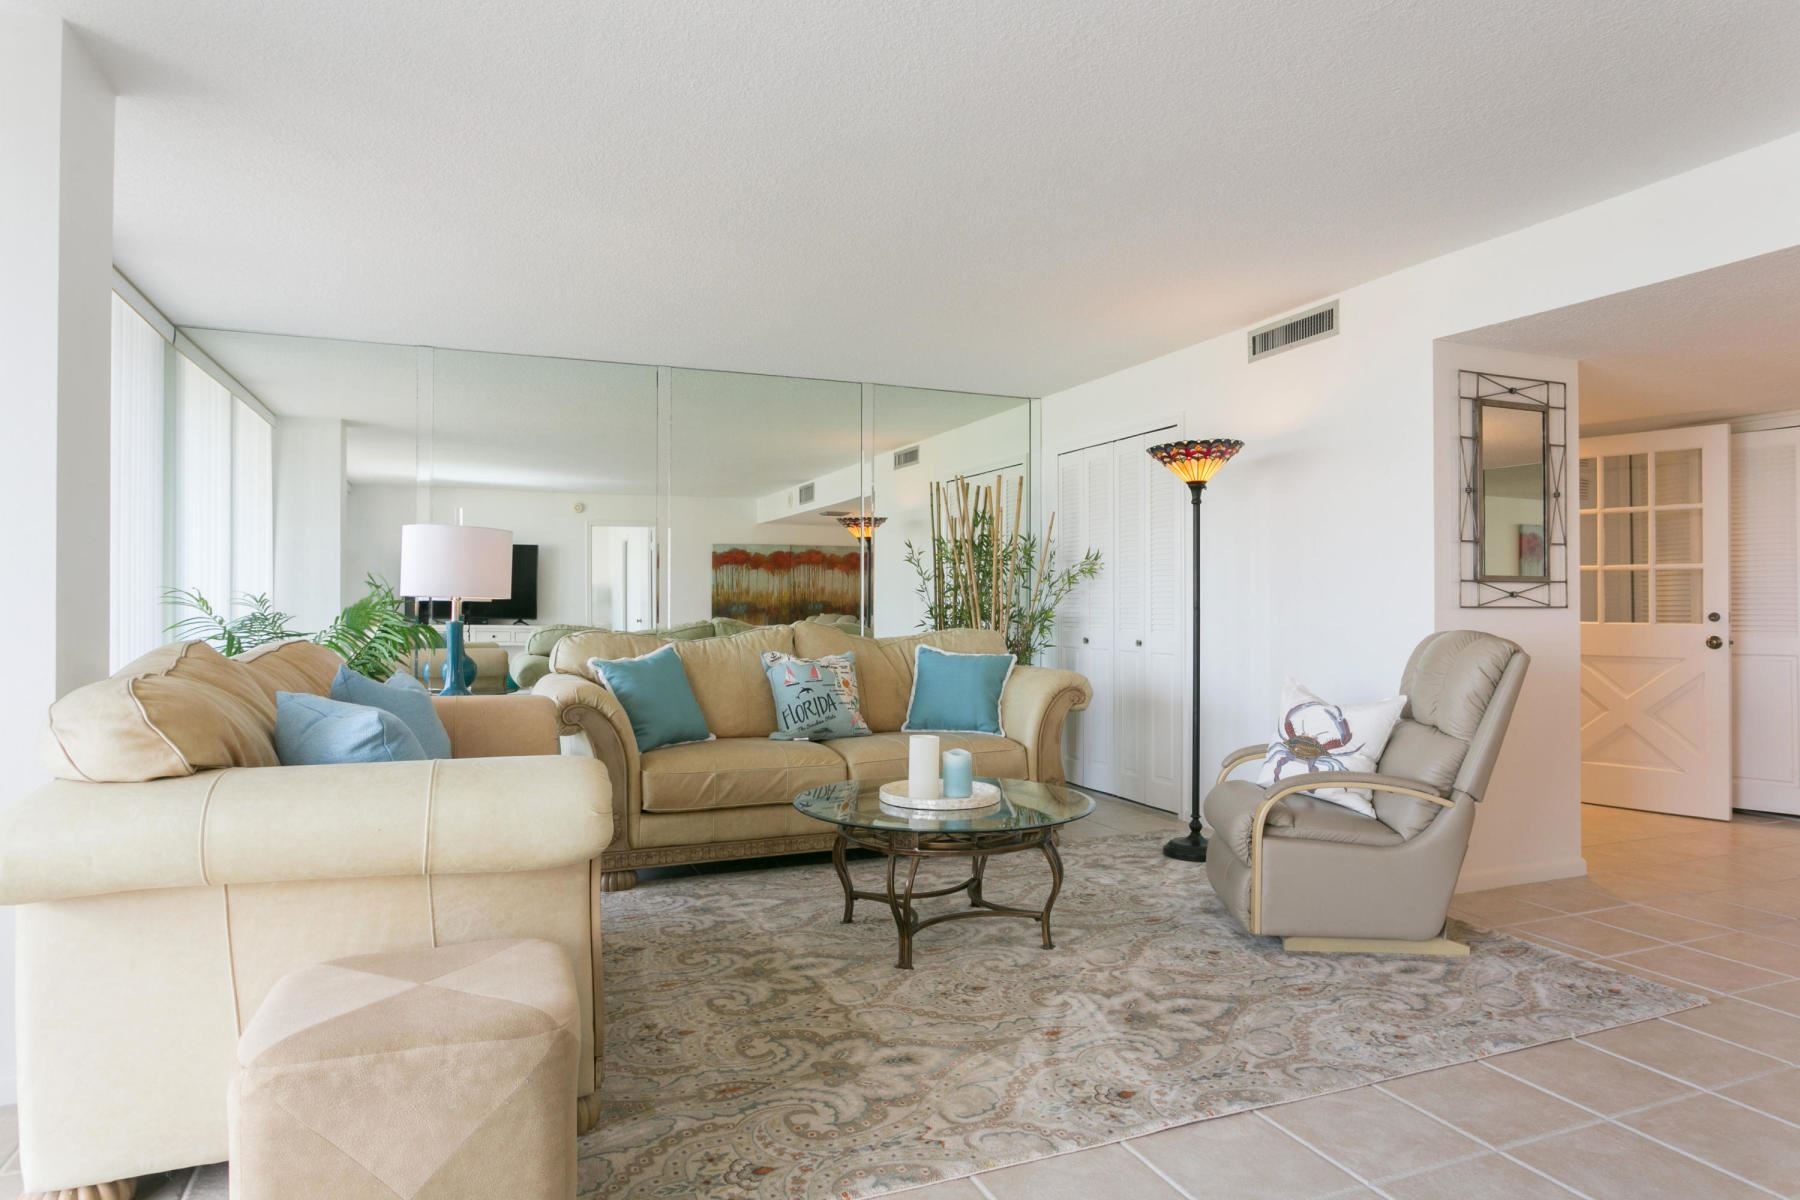 Photo of 4200 N Ocean Drive #2-305, Singer Island, FL 33404 (MLS # RX-10636043)